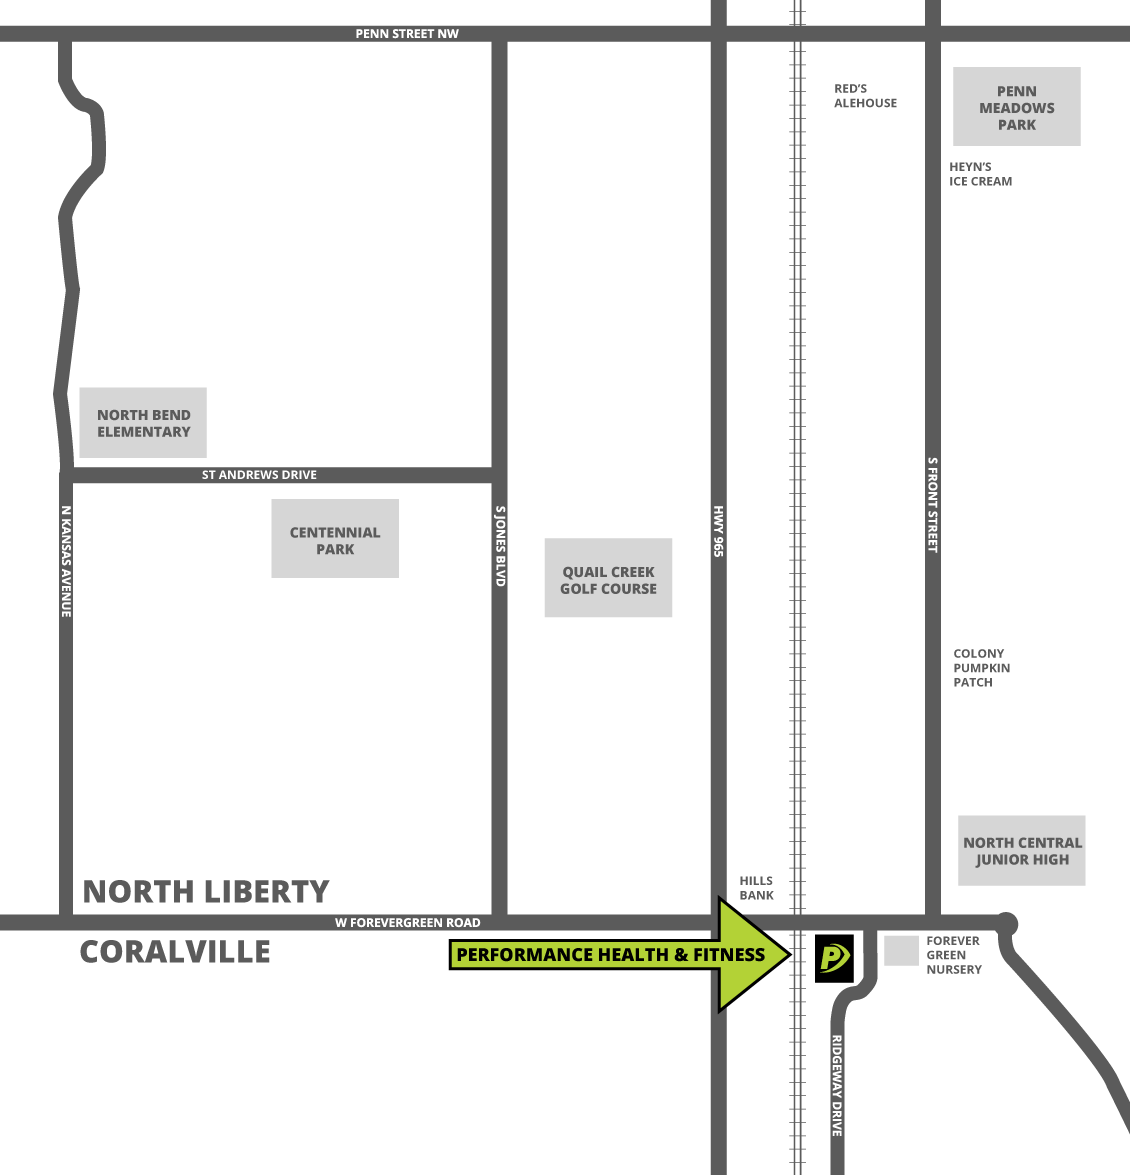 Performance Health & Fitness Location Map